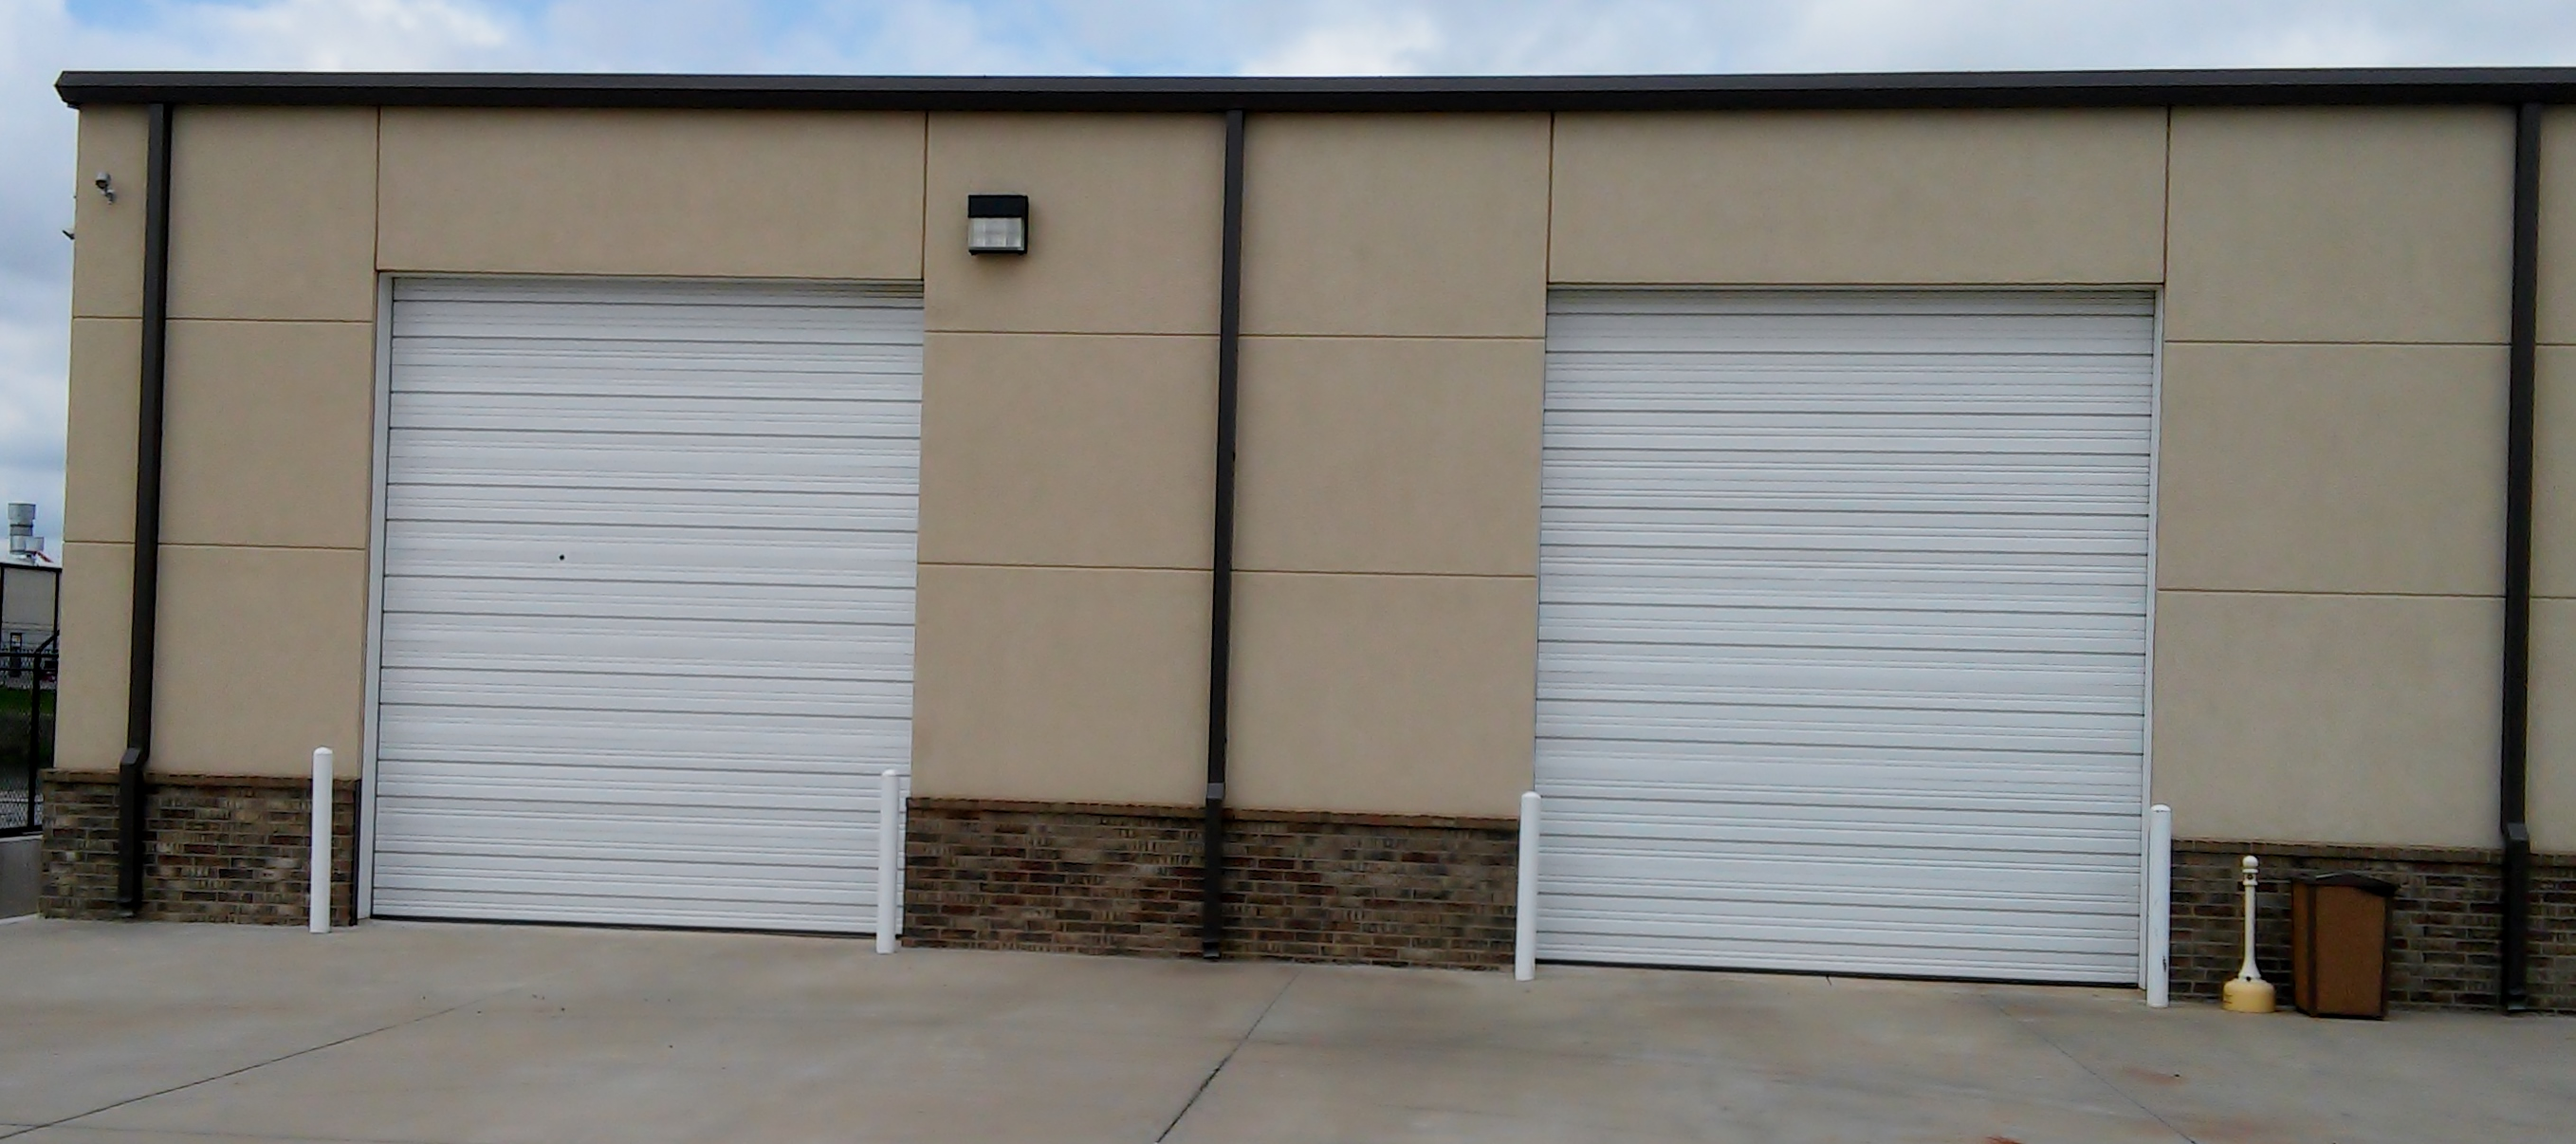 Superieur Commercial Overhead Doors By Haleu0027s Overhead Doors In Central Oklahoma